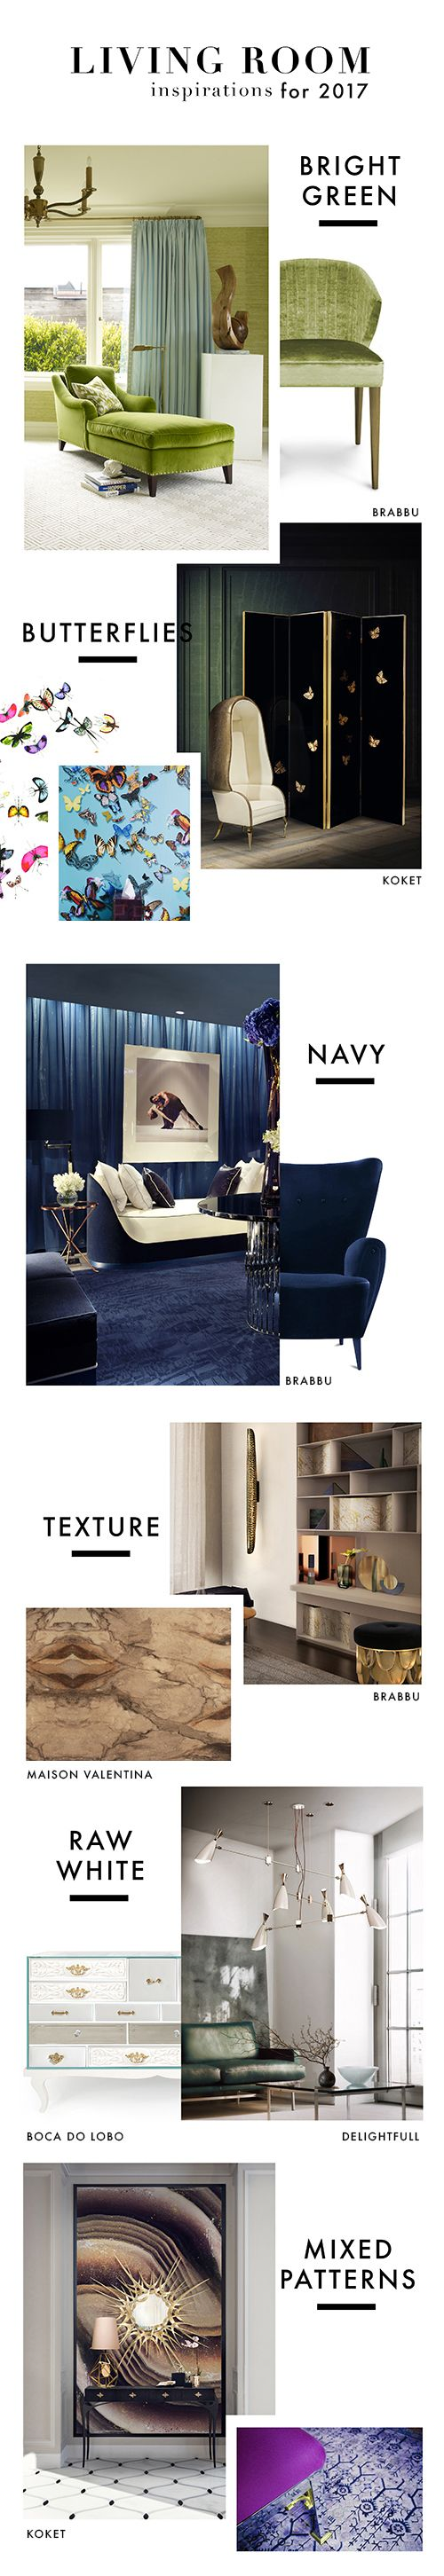 Living Room Inspirations for 2017 From, Bright green, butterflies, navy, textures, raw white and mixture patterns. | Inspirations for creative minds http://inspirationdesignbooks.com/infographic/